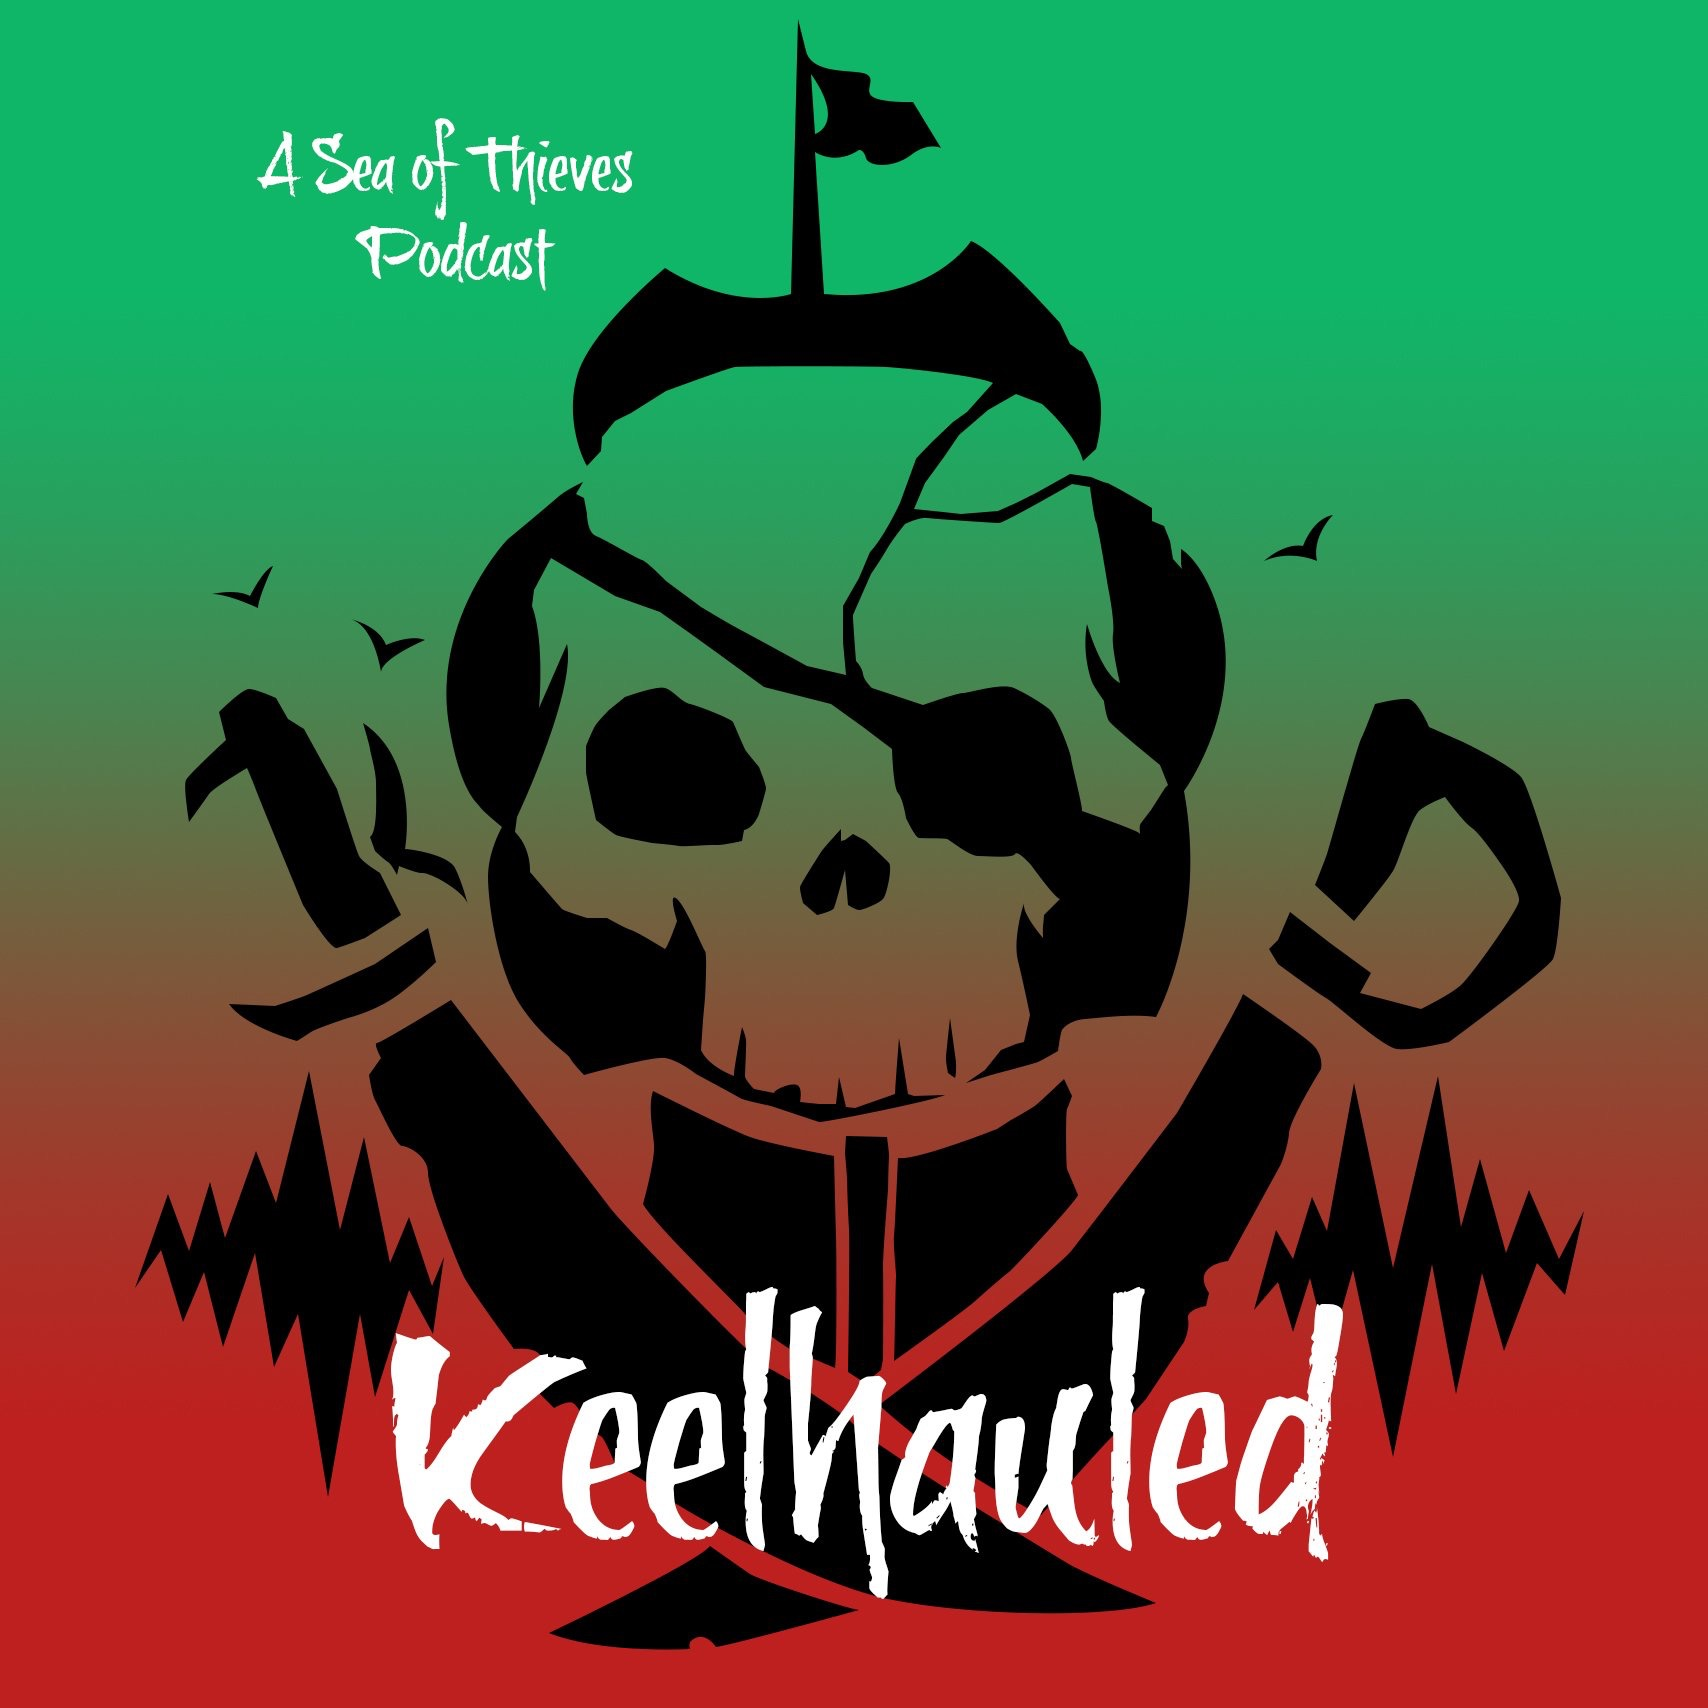 Keelhauled: A Sea of Thieves Podcast